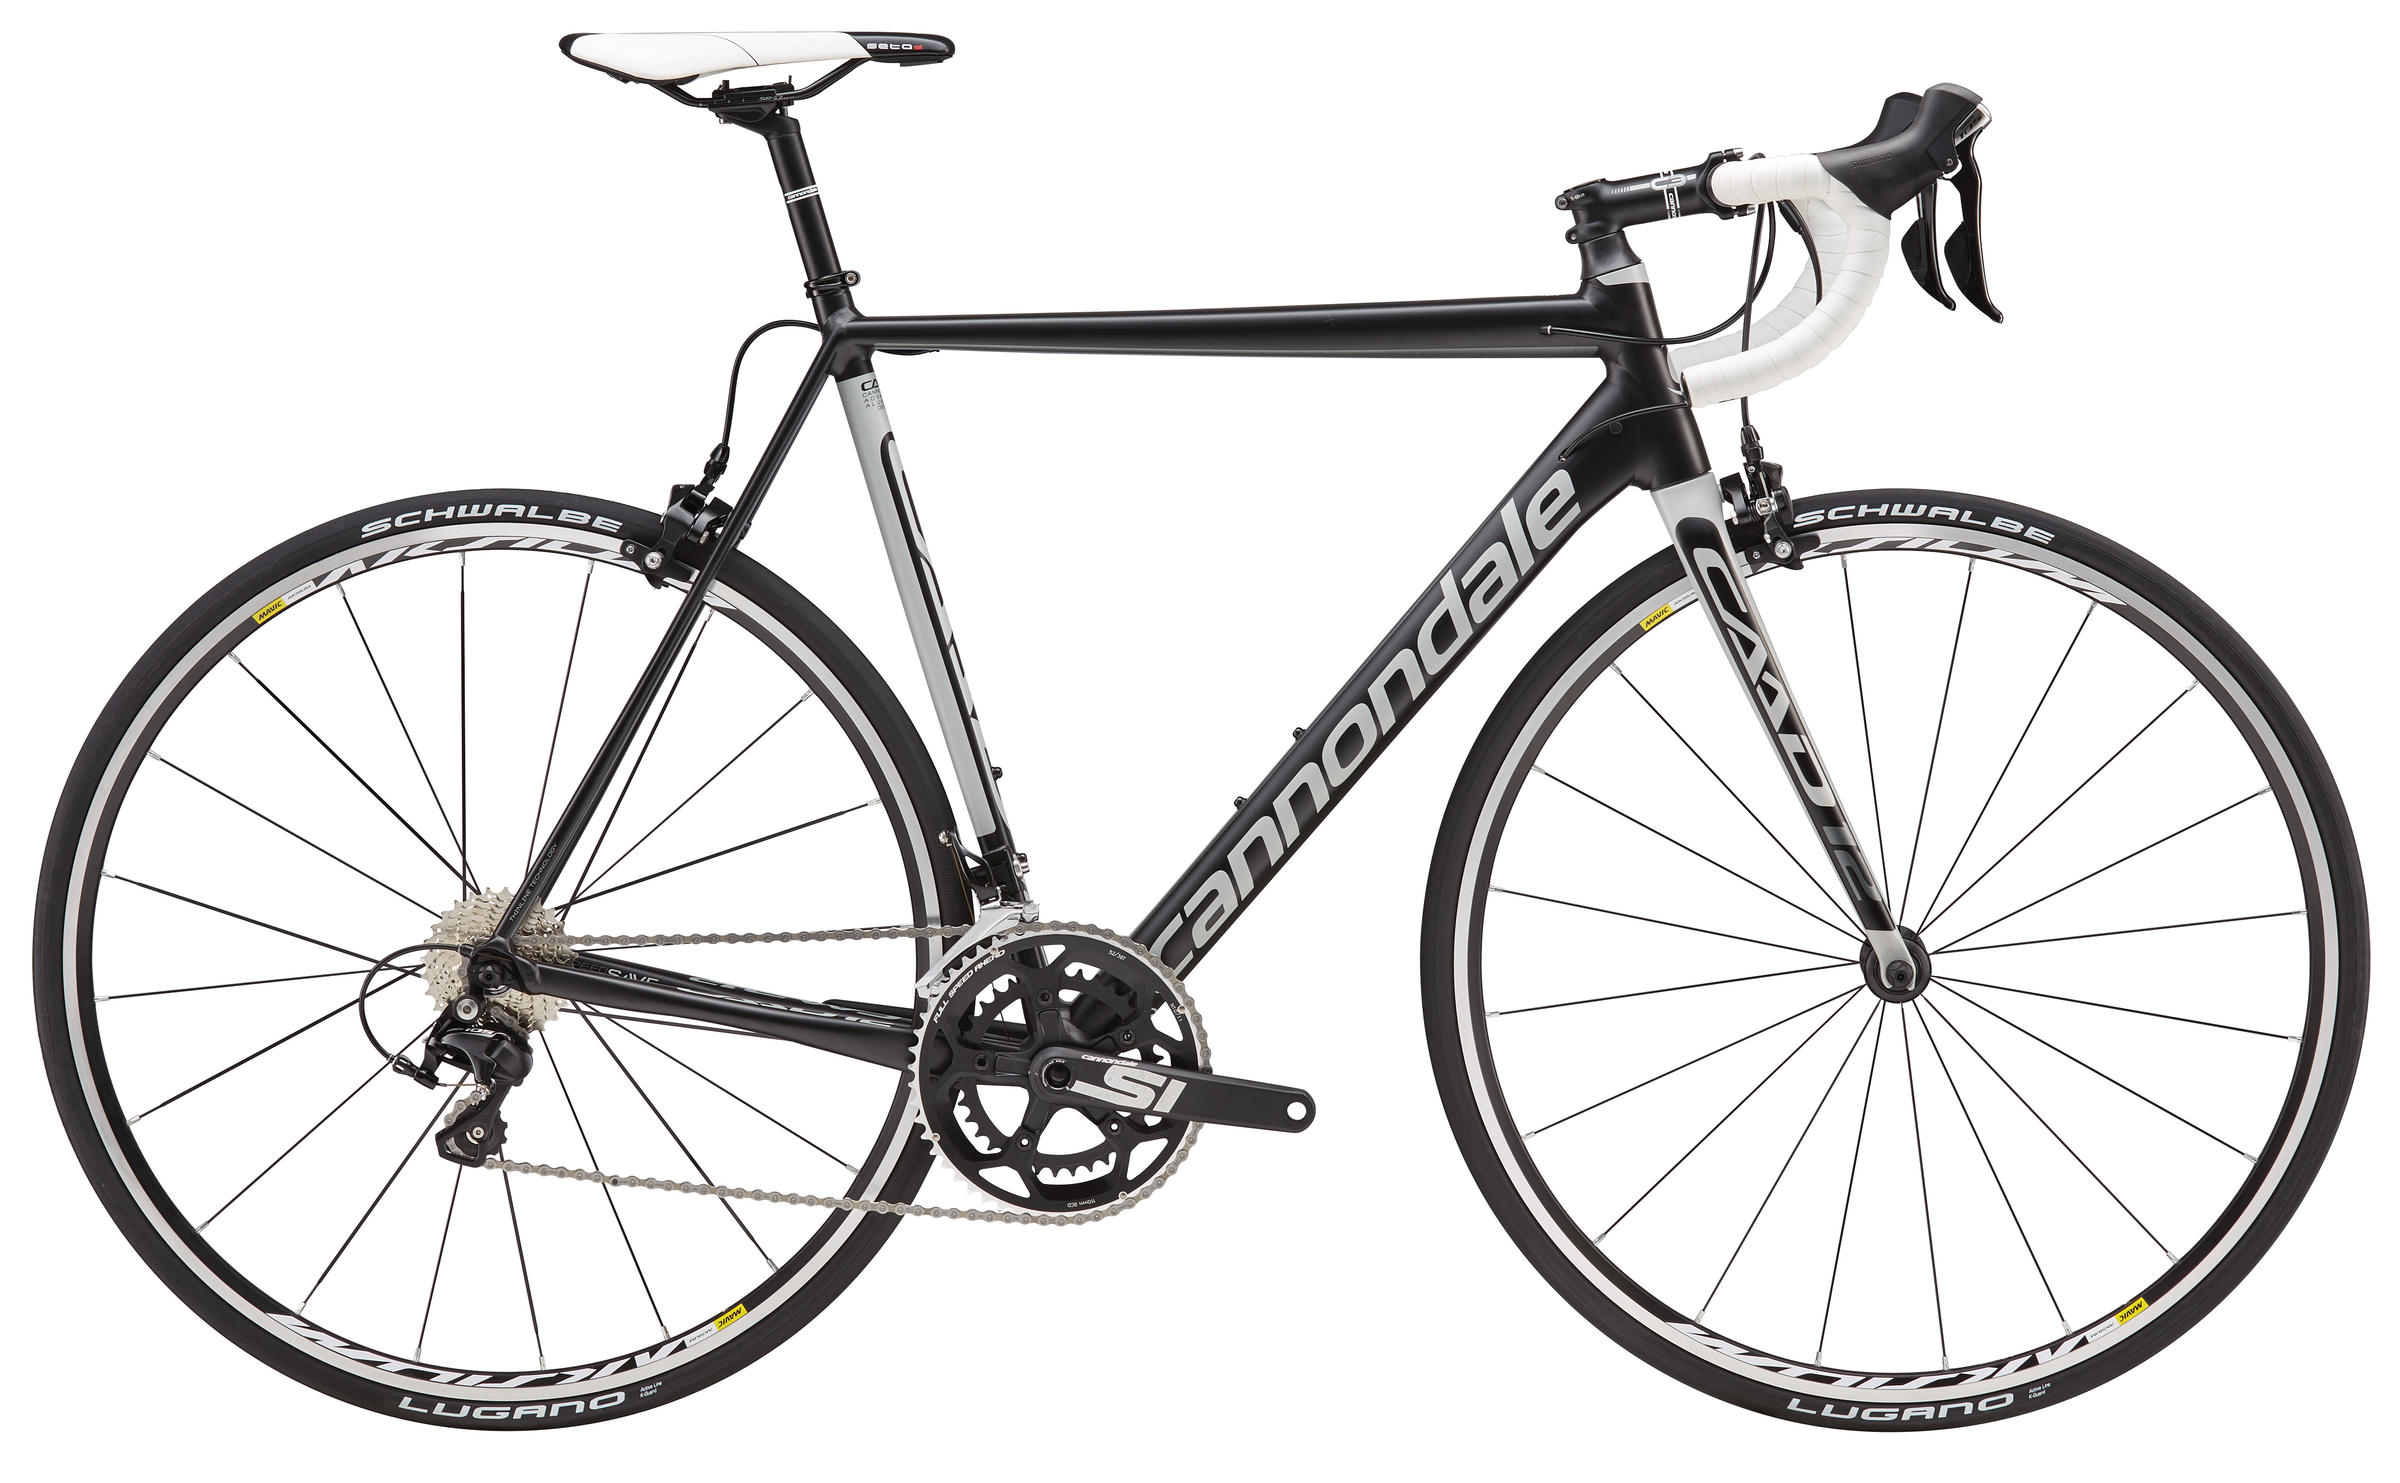 My Bike Journeyjust Started Giant Tcr Advanced 2 Disc 2019 Dr Koh Slr 3 M 2014 Wht Blue The Has Won Of Year 2016 In Several Famous Magazines Websites